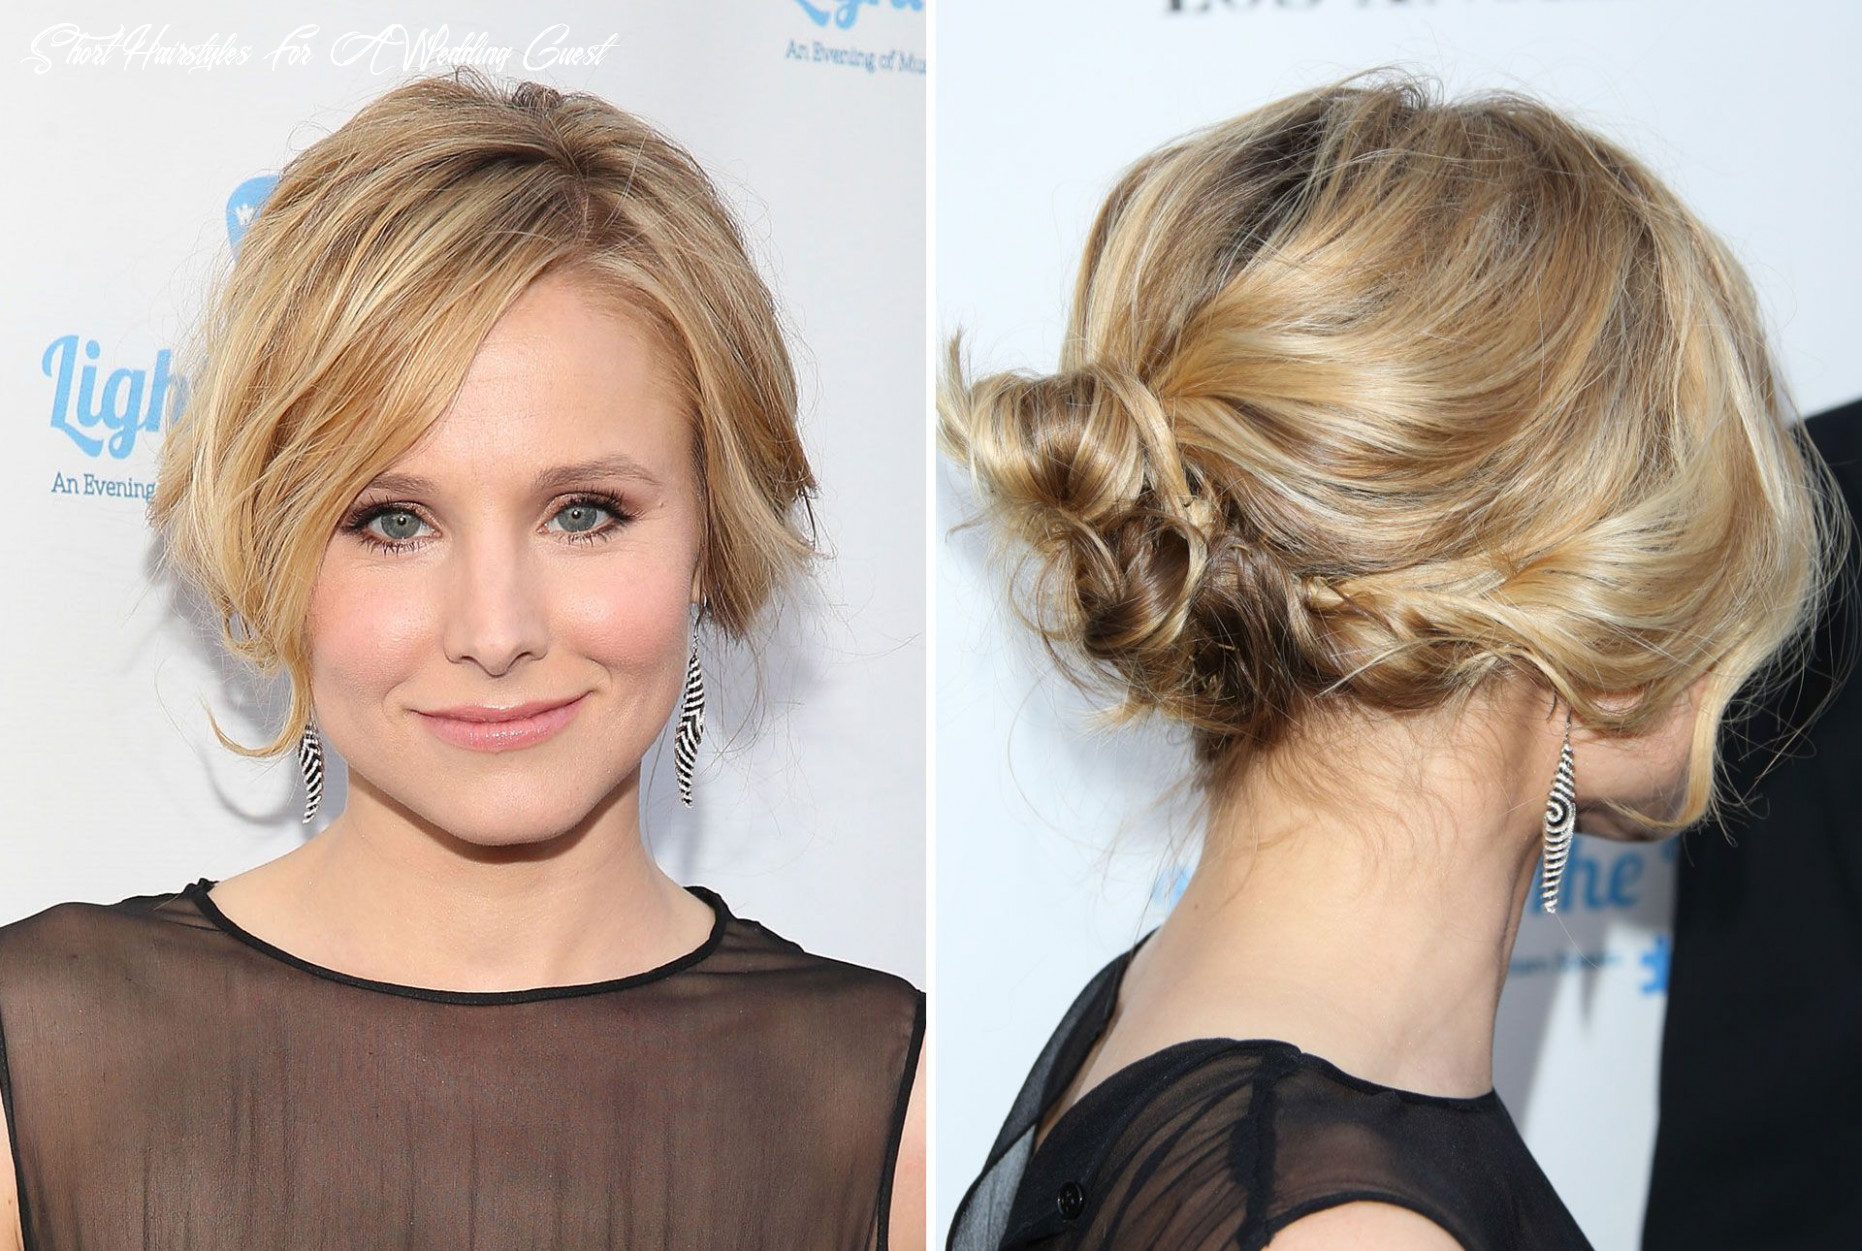 Attractive short hairstyle for wedding guest image result easy